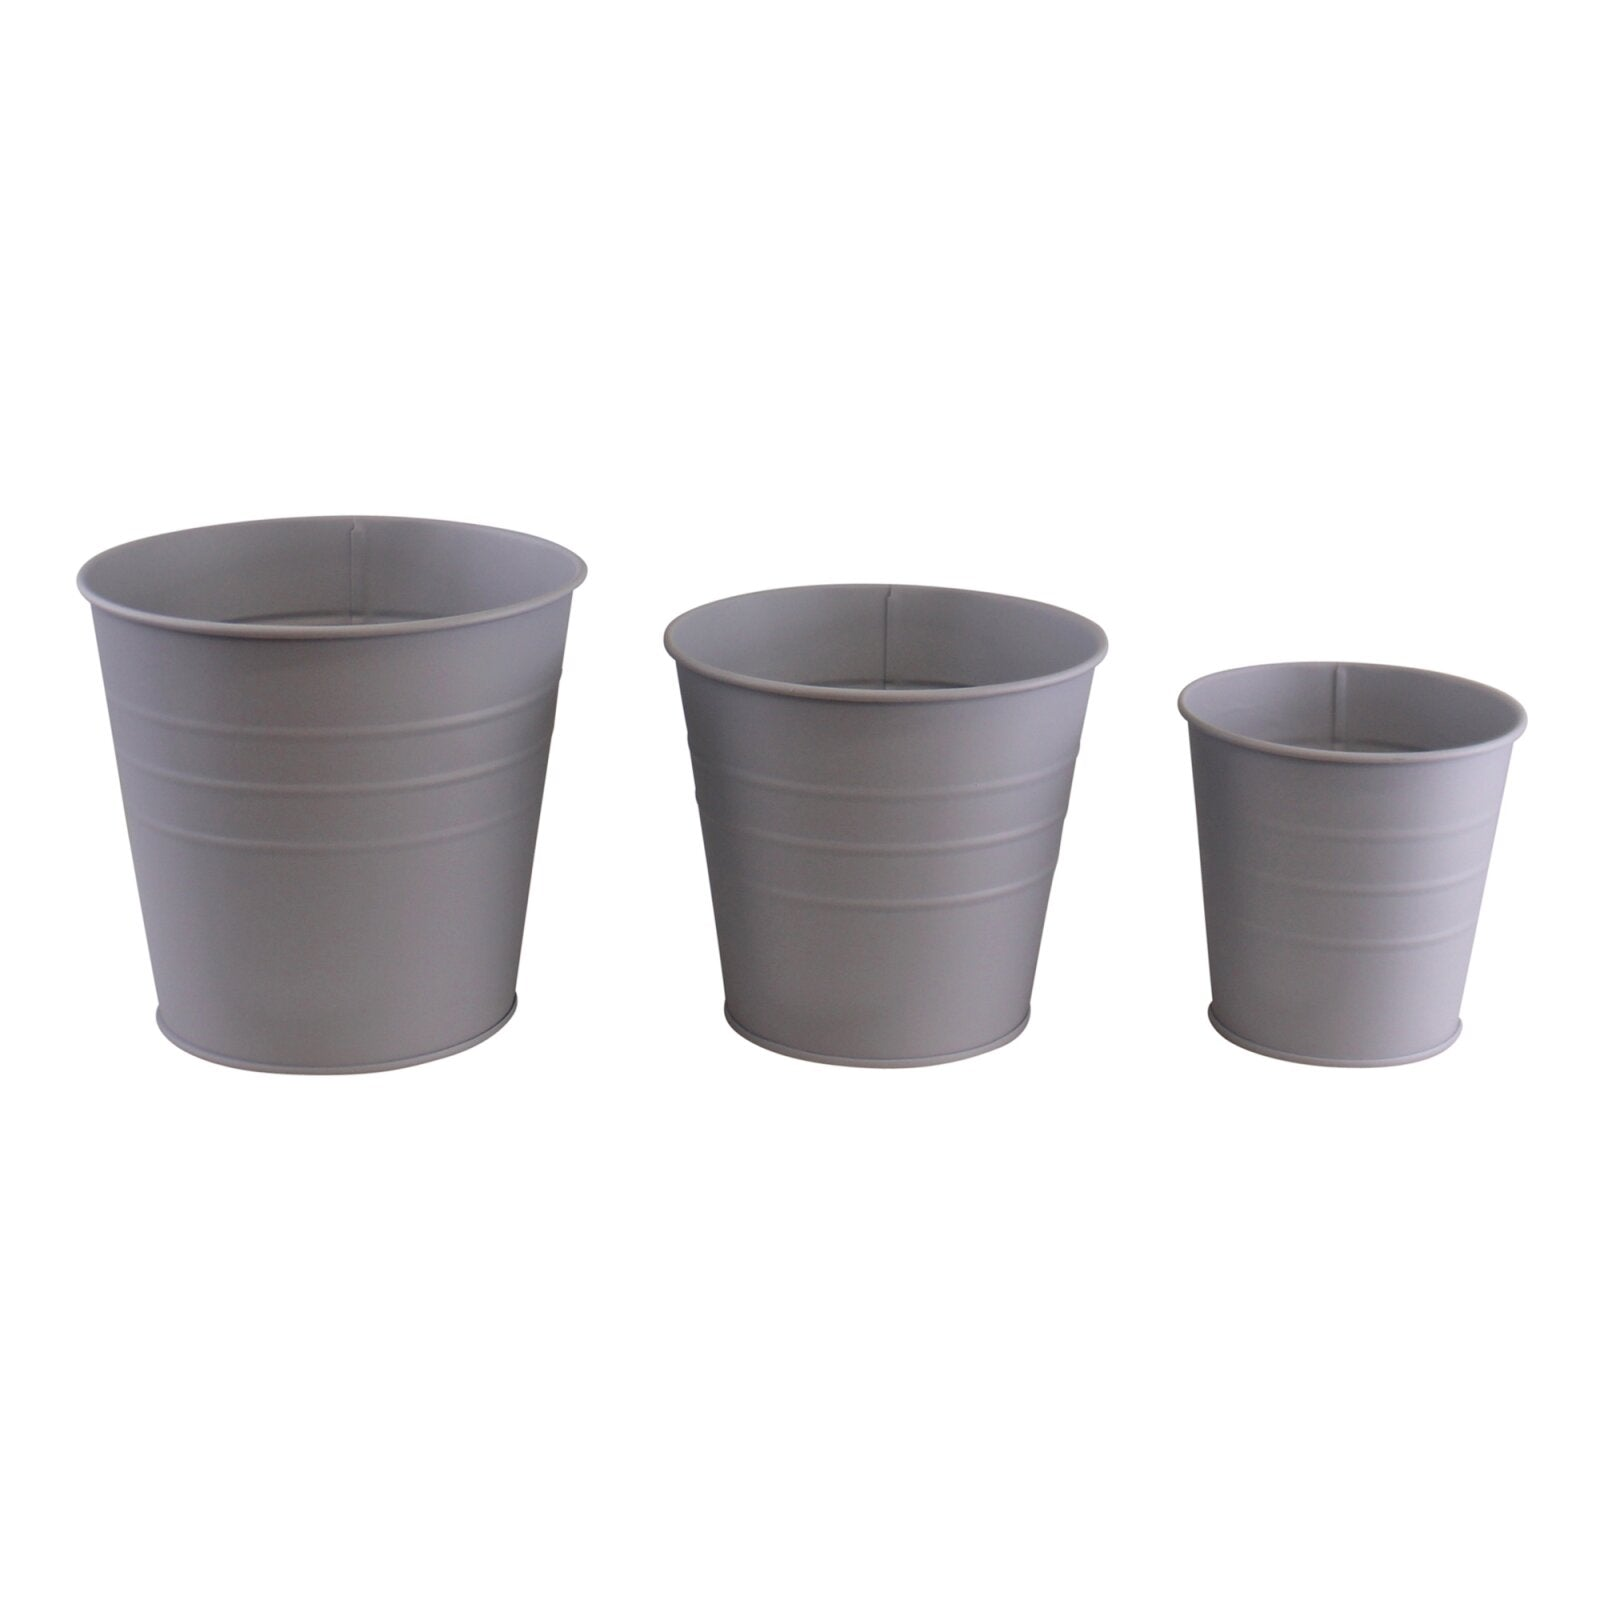 Set of 3 Round Metal Planters, Grey, Lawn & Garden by Low Cost Gifts